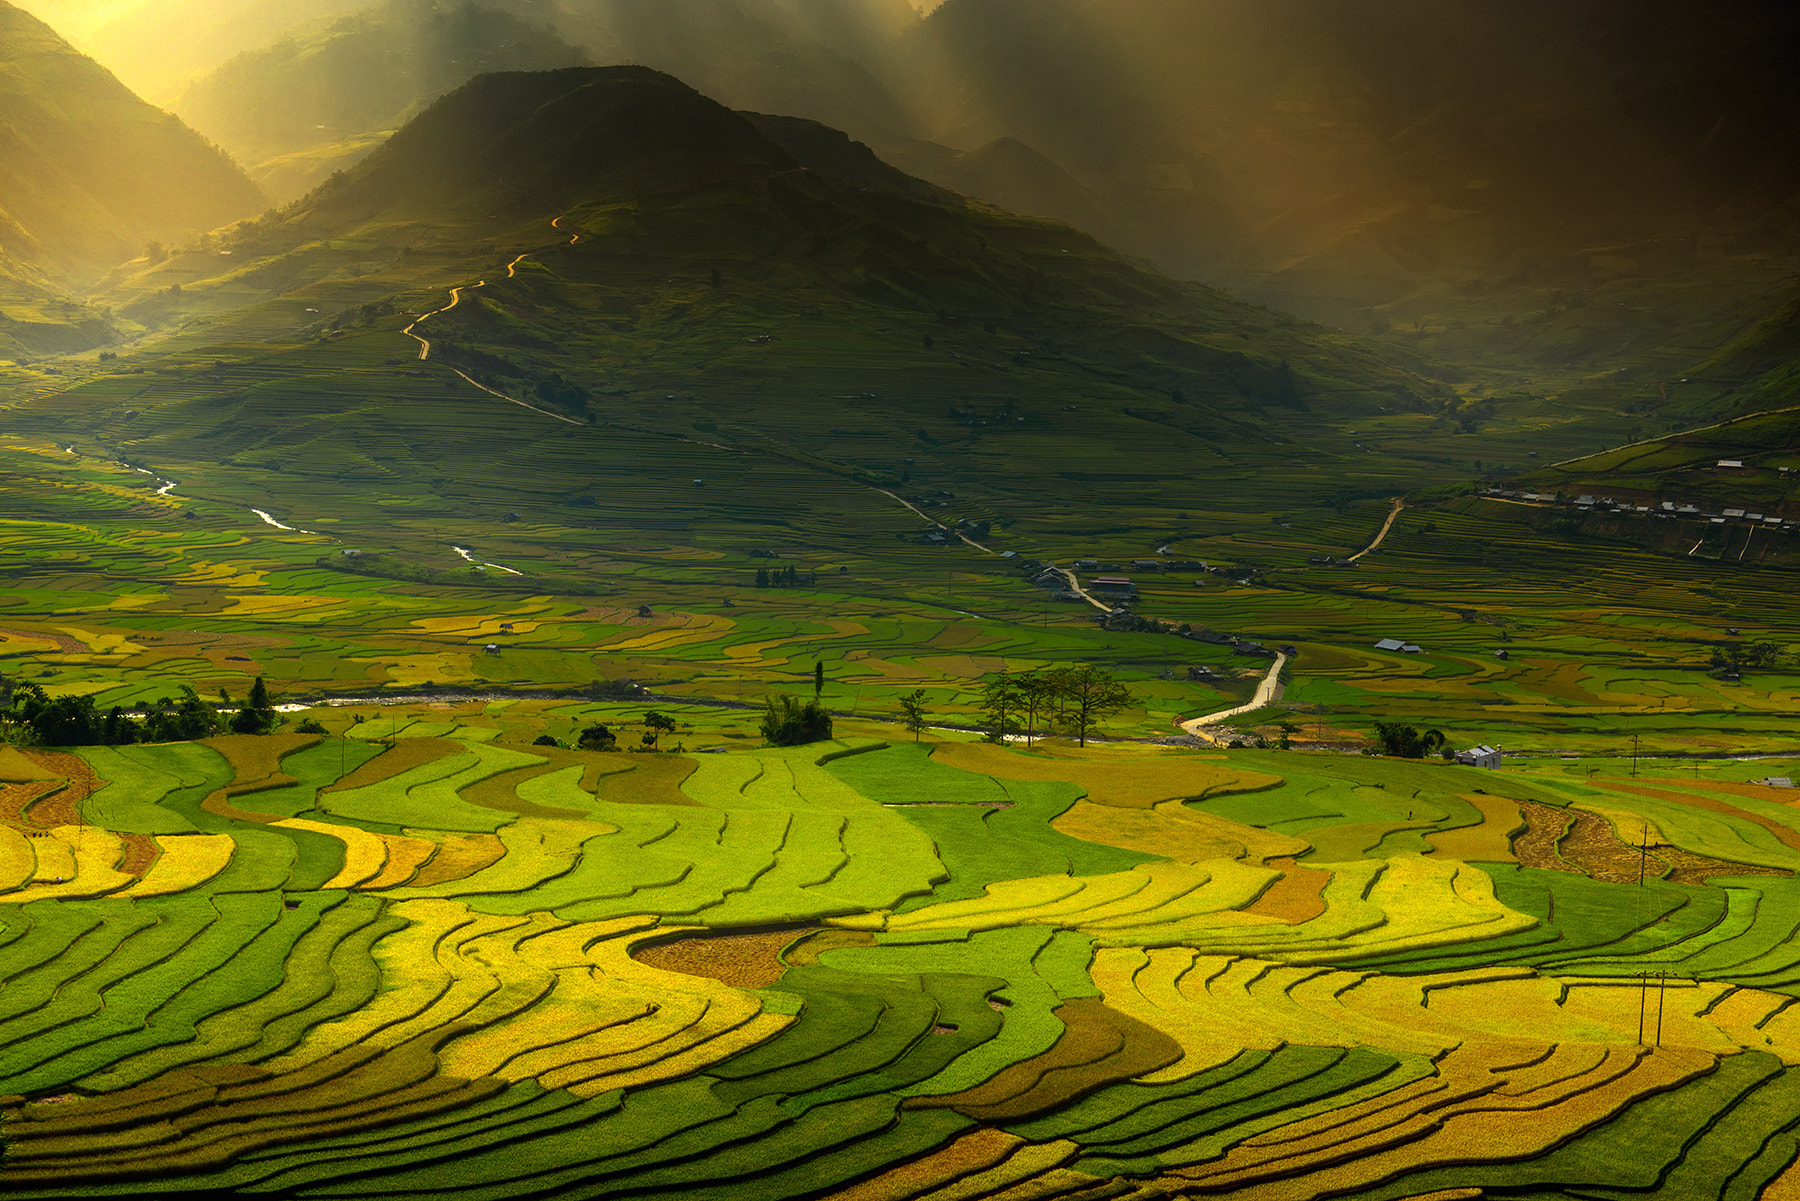 Photograph multi coloured rice fields by Ratnakorn Piyasirisorost on 500px